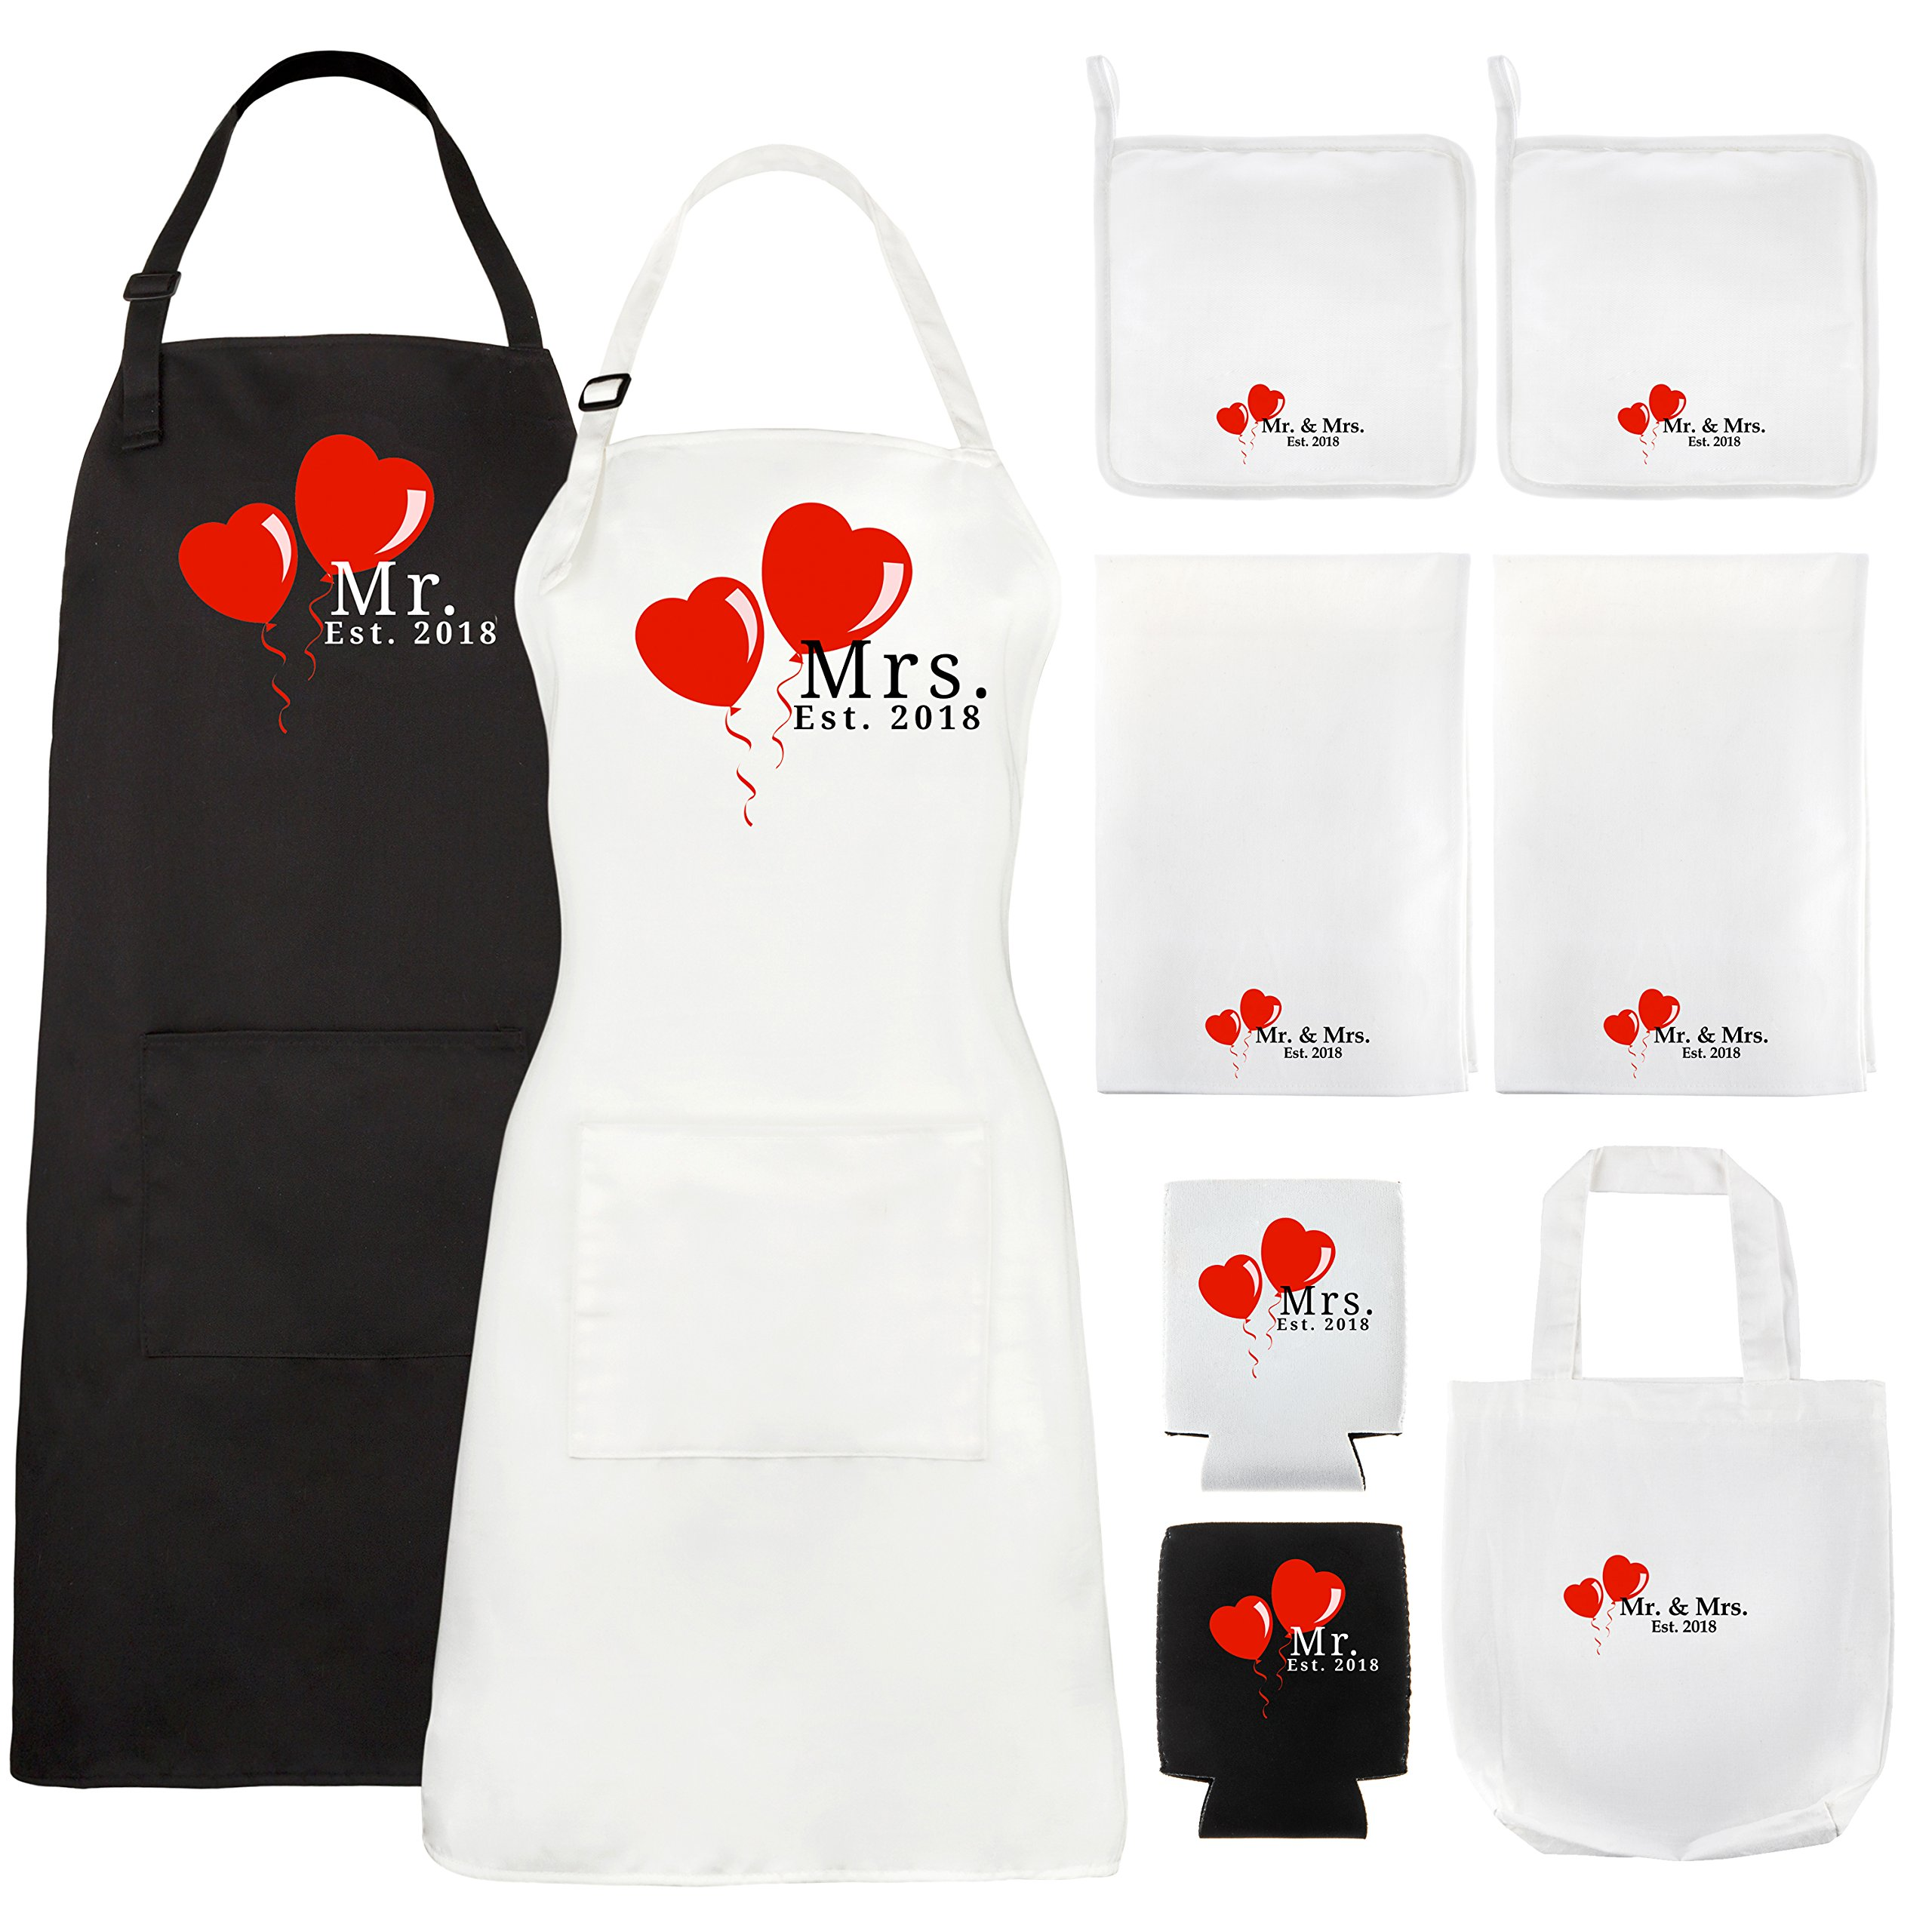 Details About Let The Fun Begin Wedding Gift Set Mr And Mrs 2018 Kitchen Bridal Shower